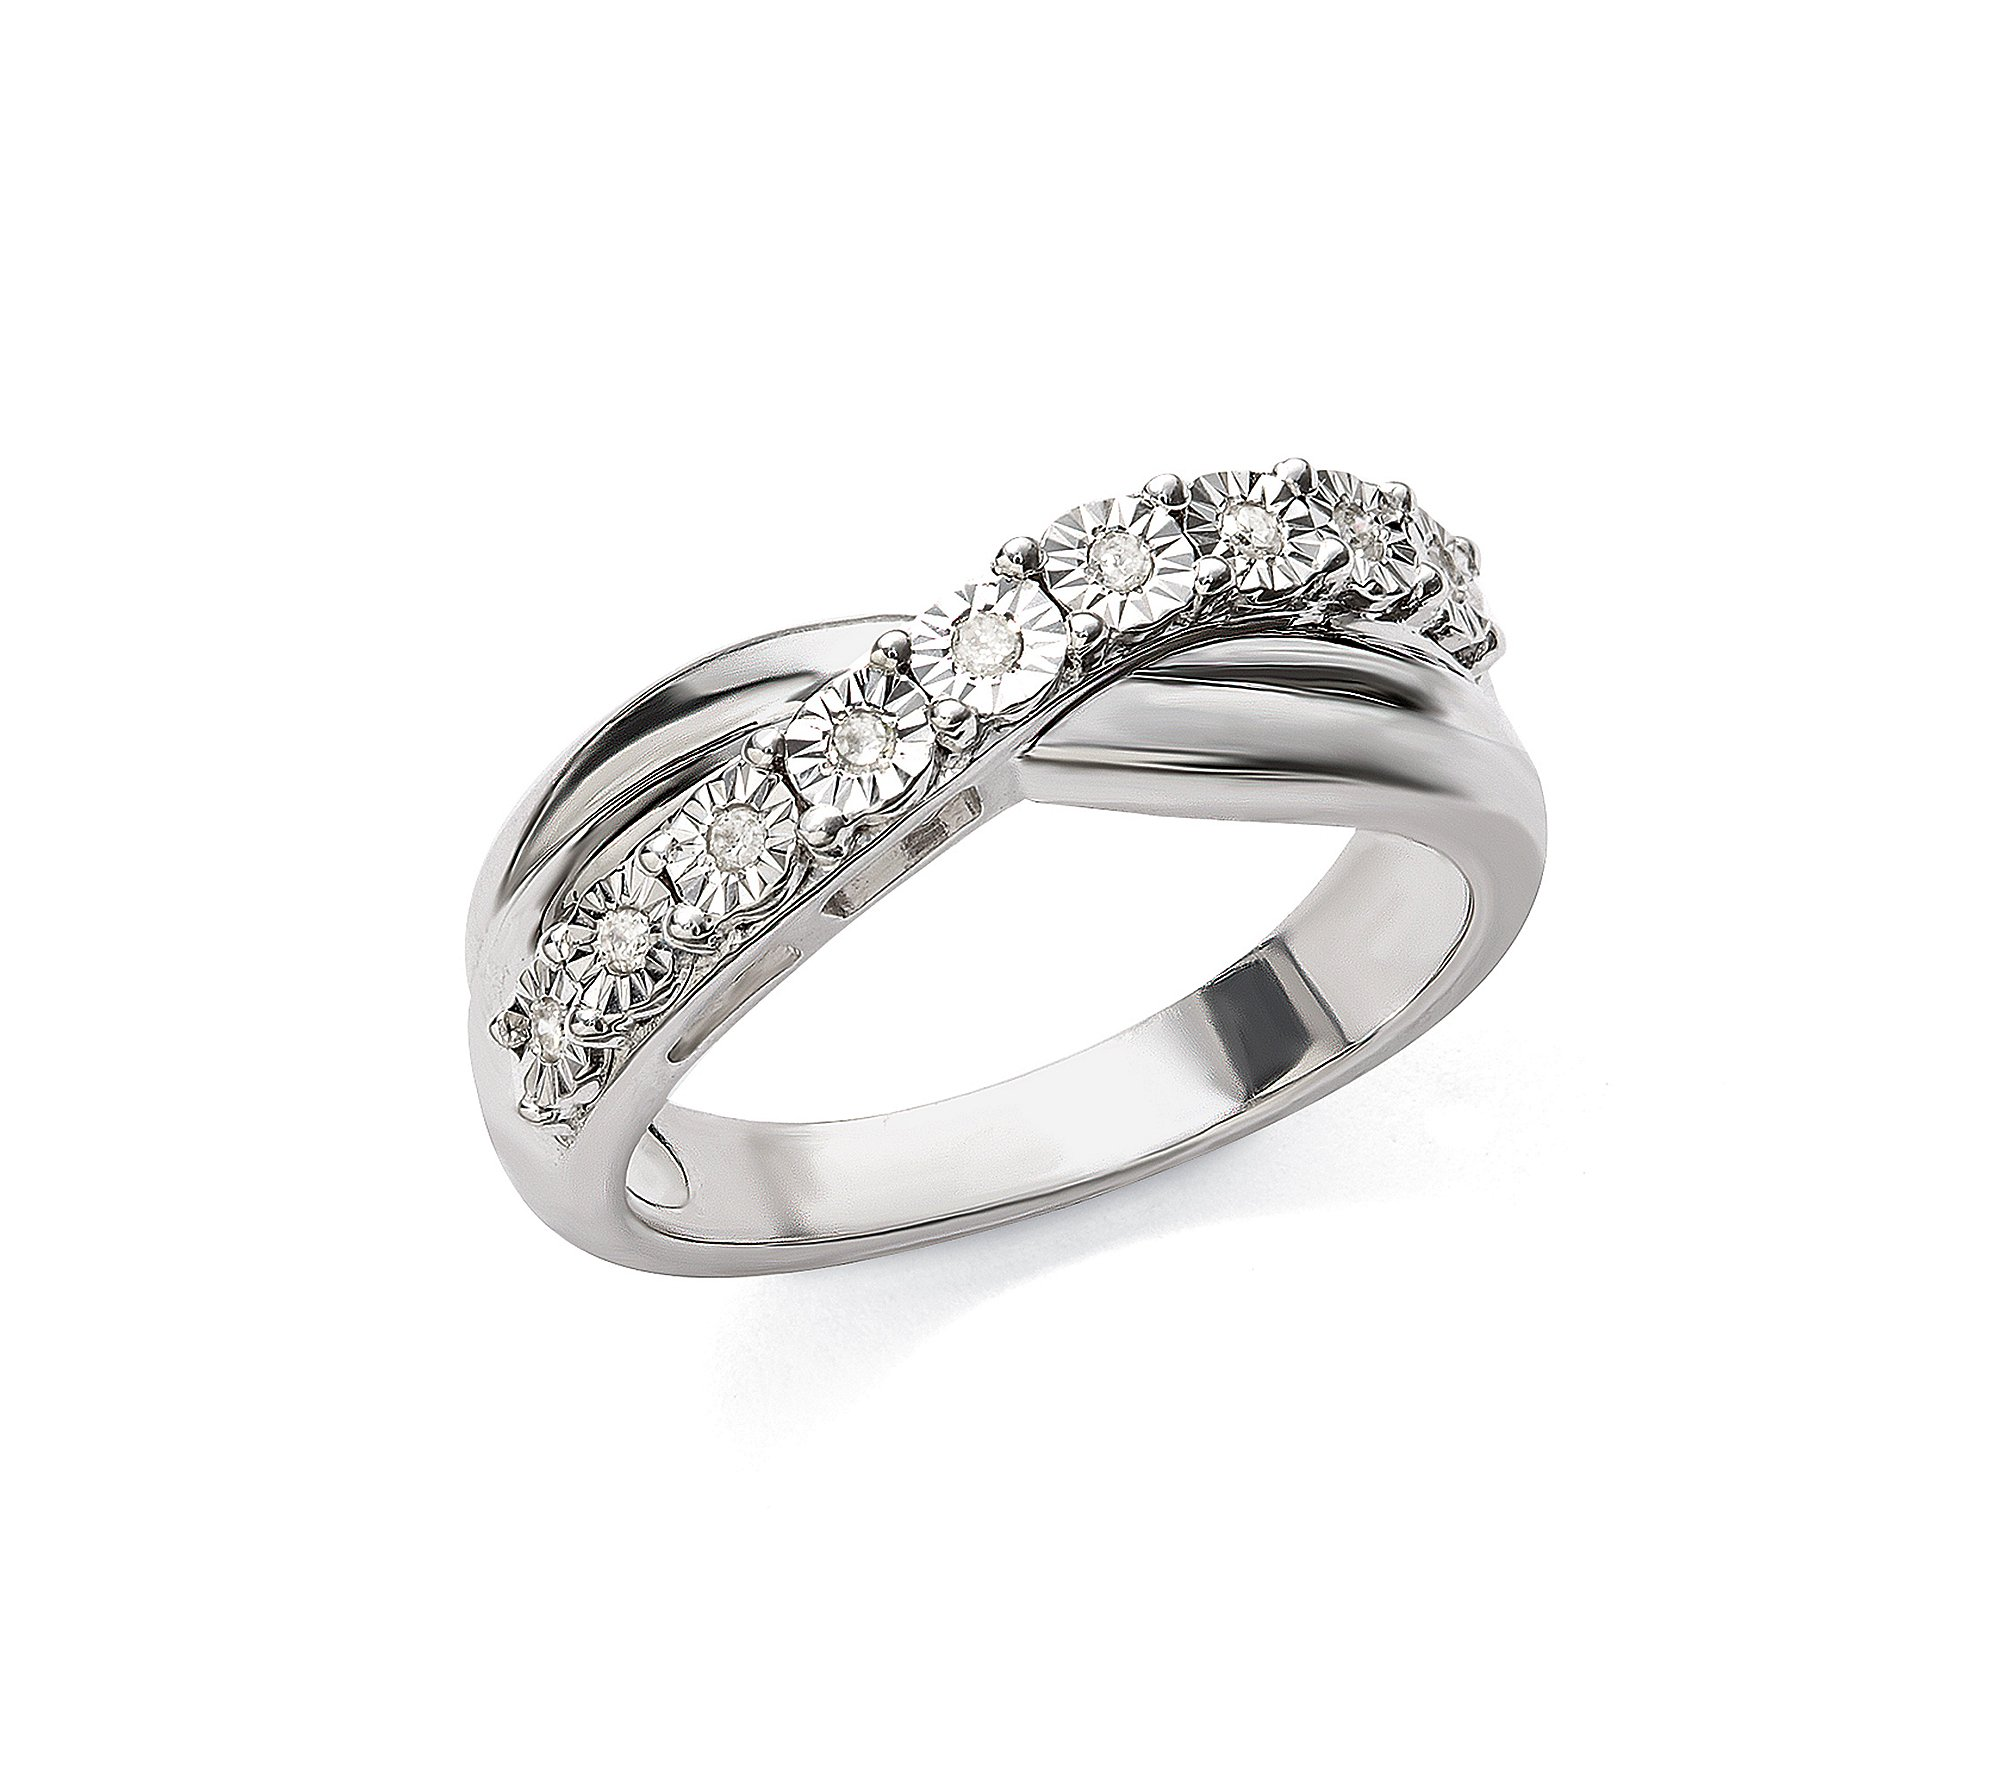 0.08 ct. t.w. Diamond Crossover Band Ring in Sterling Silver